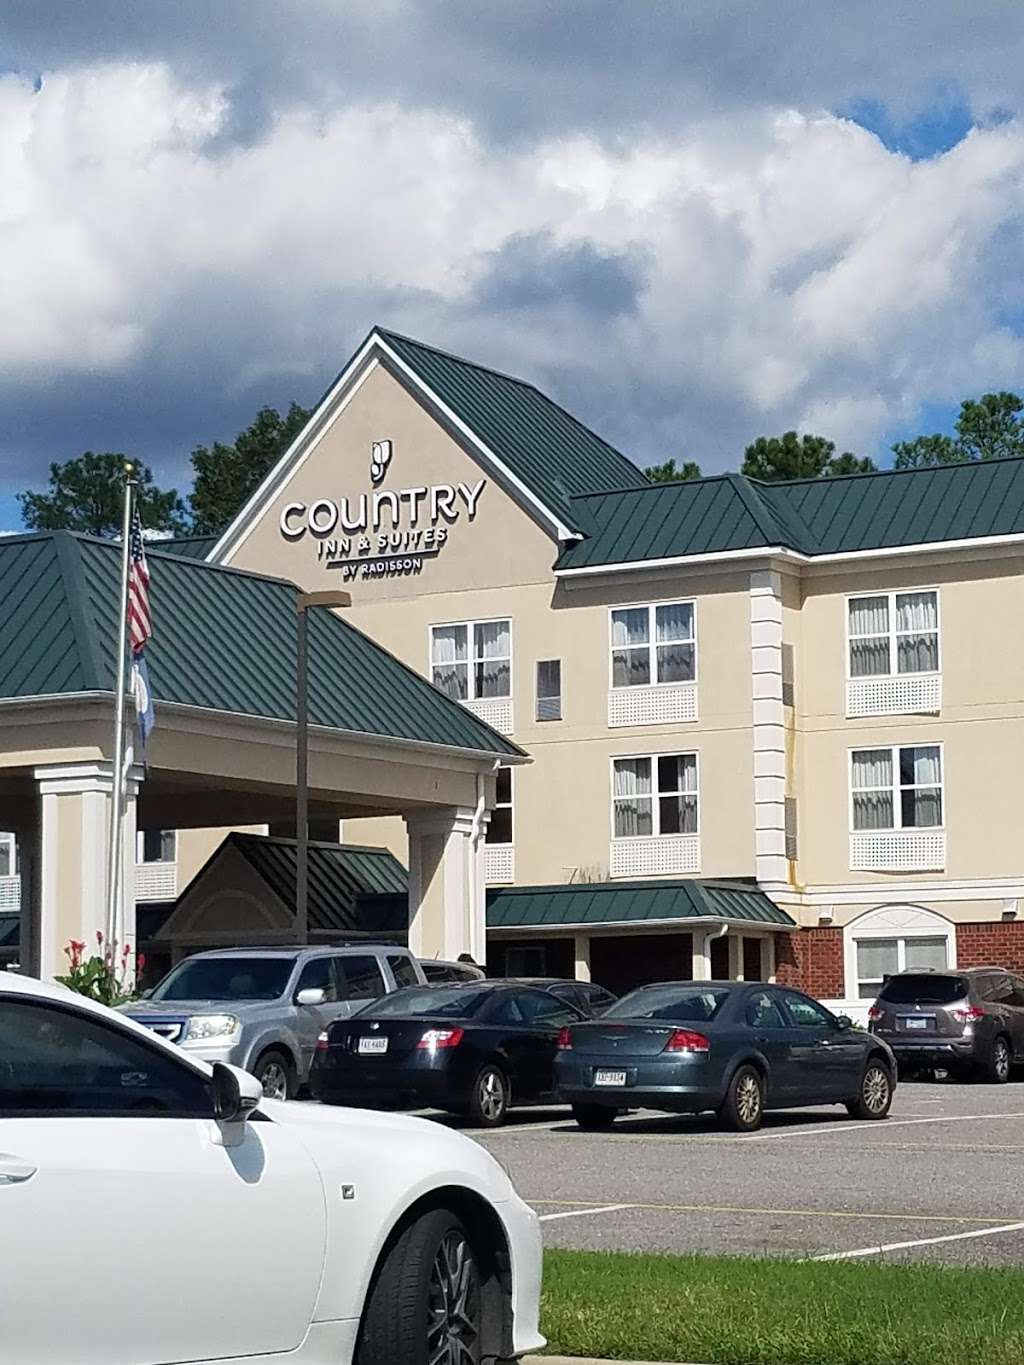 Country Inn & Suites by Radisson, Doswell (Kings Dominion), VA - lodging  | Photo 8 of 10 | Address: 16250 International St, Doswell, VA 23047, USA | Phone: (804) 612-8450